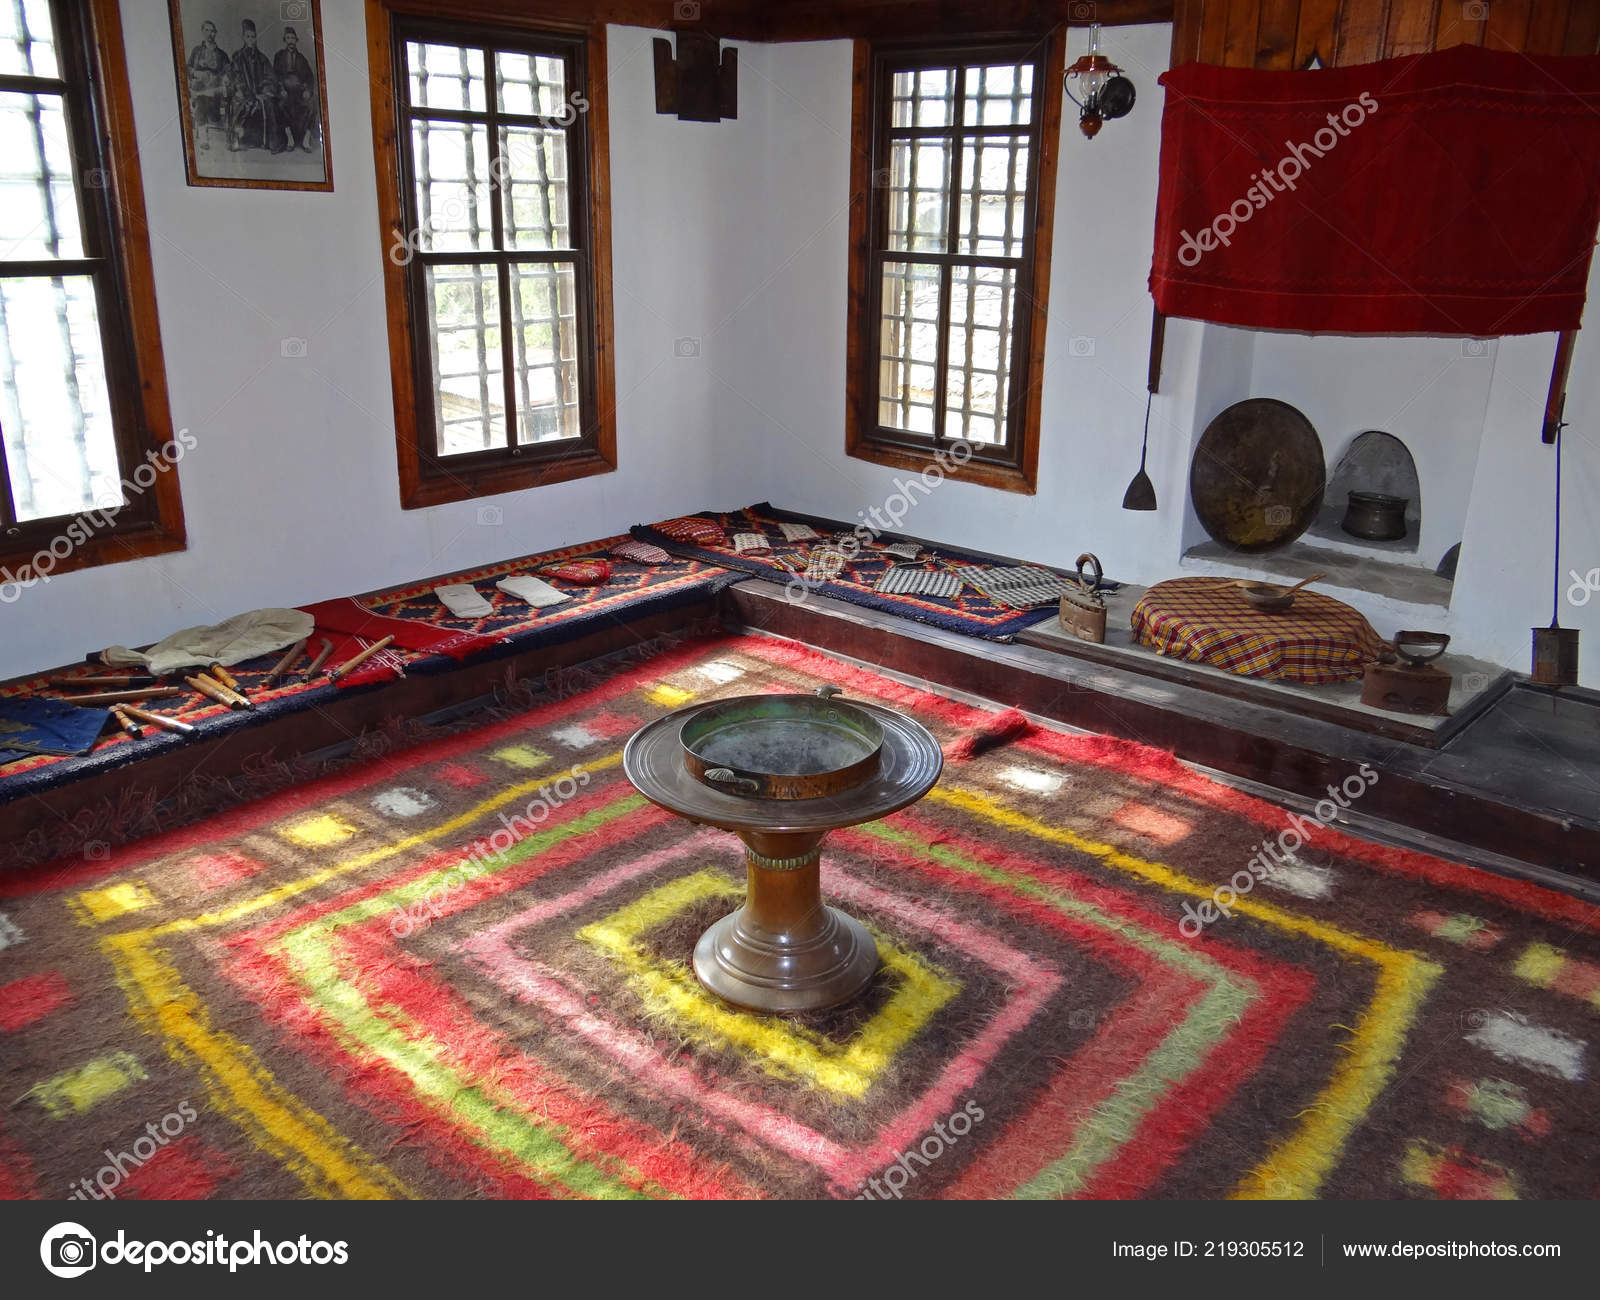 Ambiance Et Style Poitiers traditional bulgarian medieval living room interior – stock